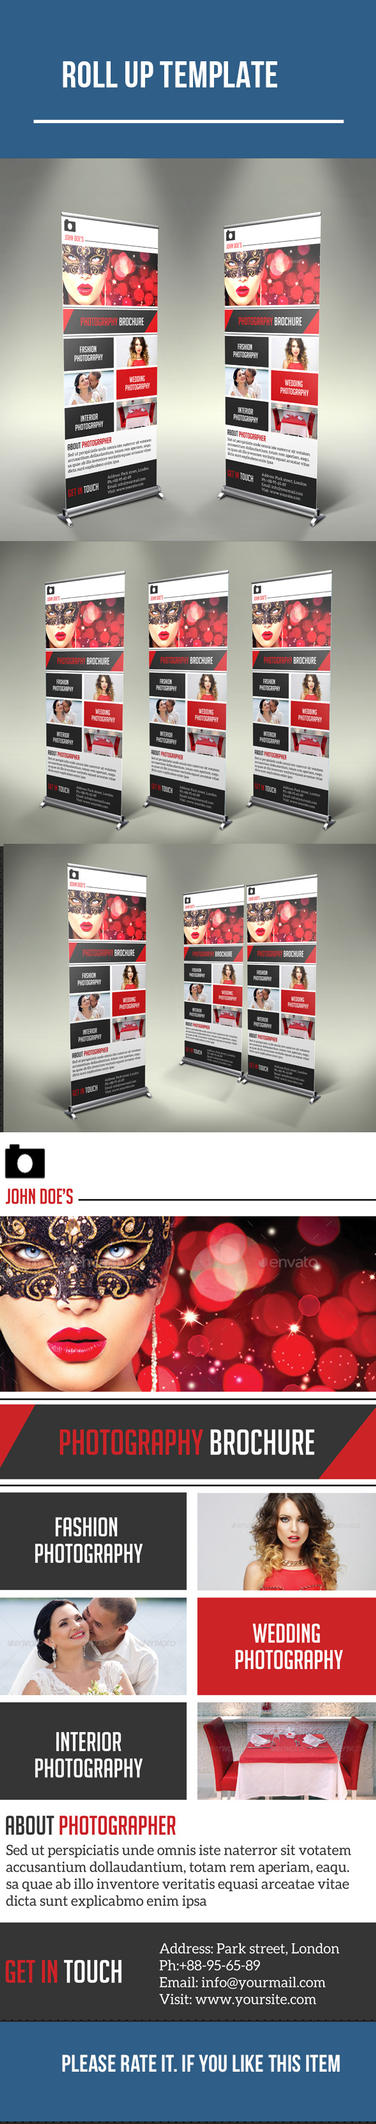 Photography roll up design by DGTouch